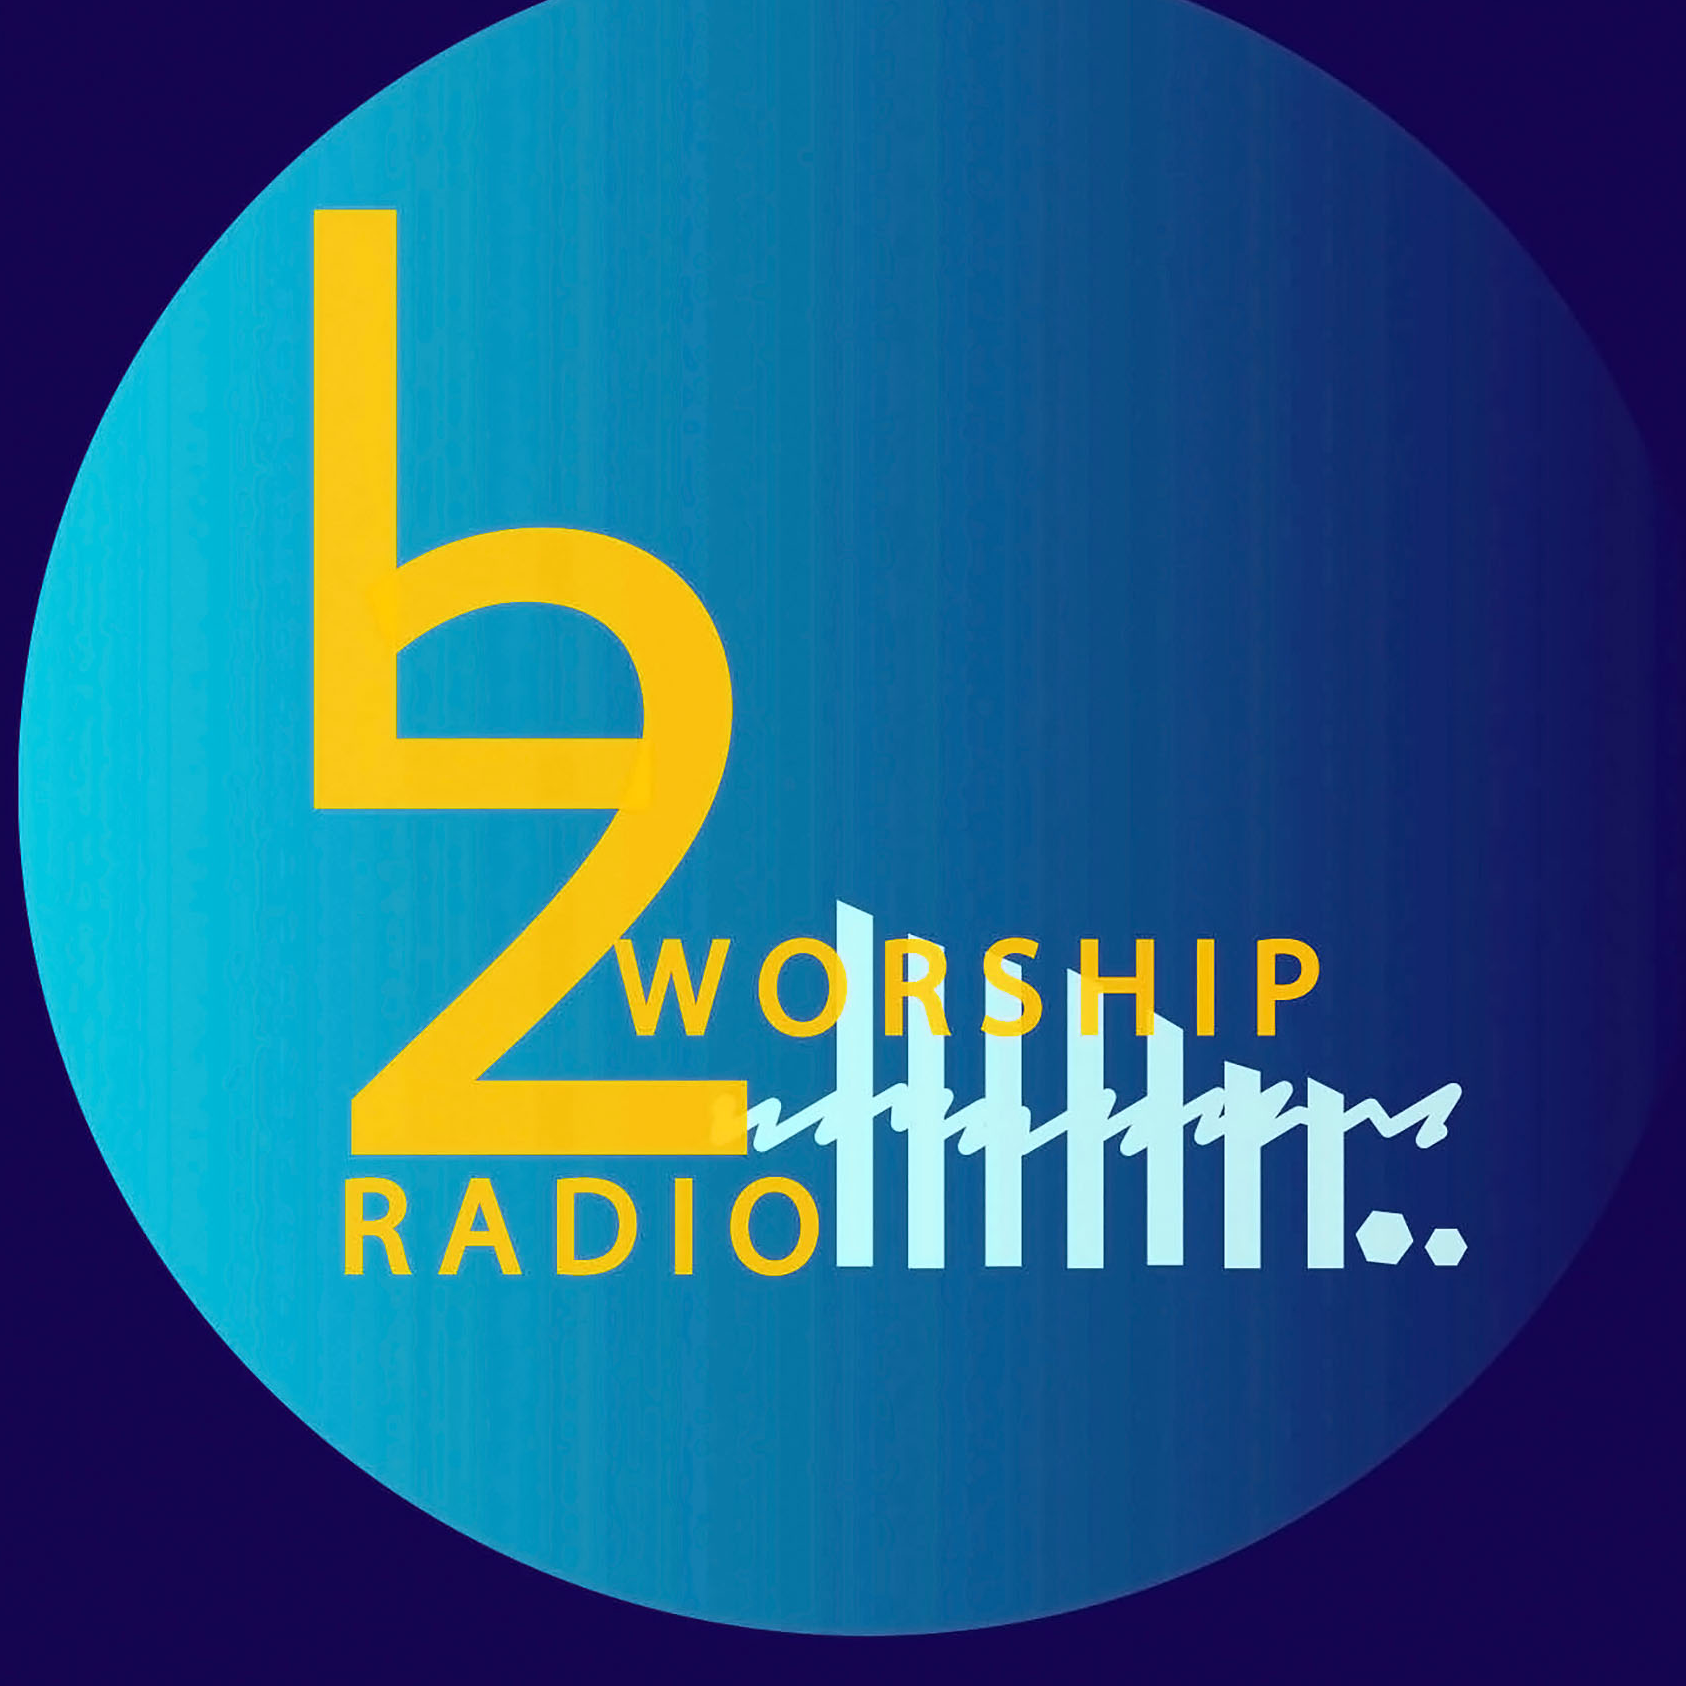 Love 2 Worship Radio